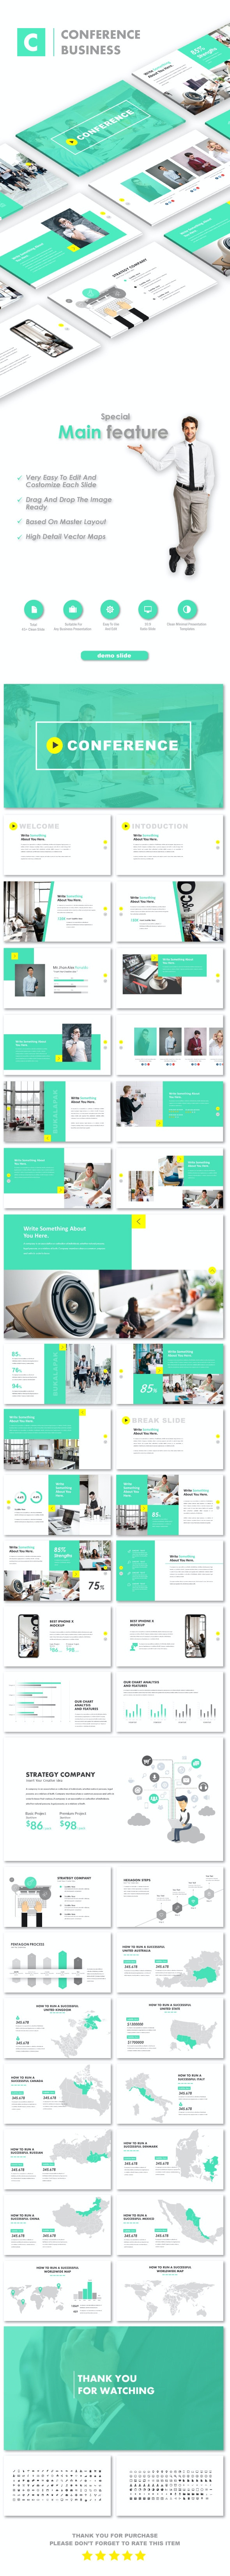 Conference Business Keynote Templates - Business Keynote Templates